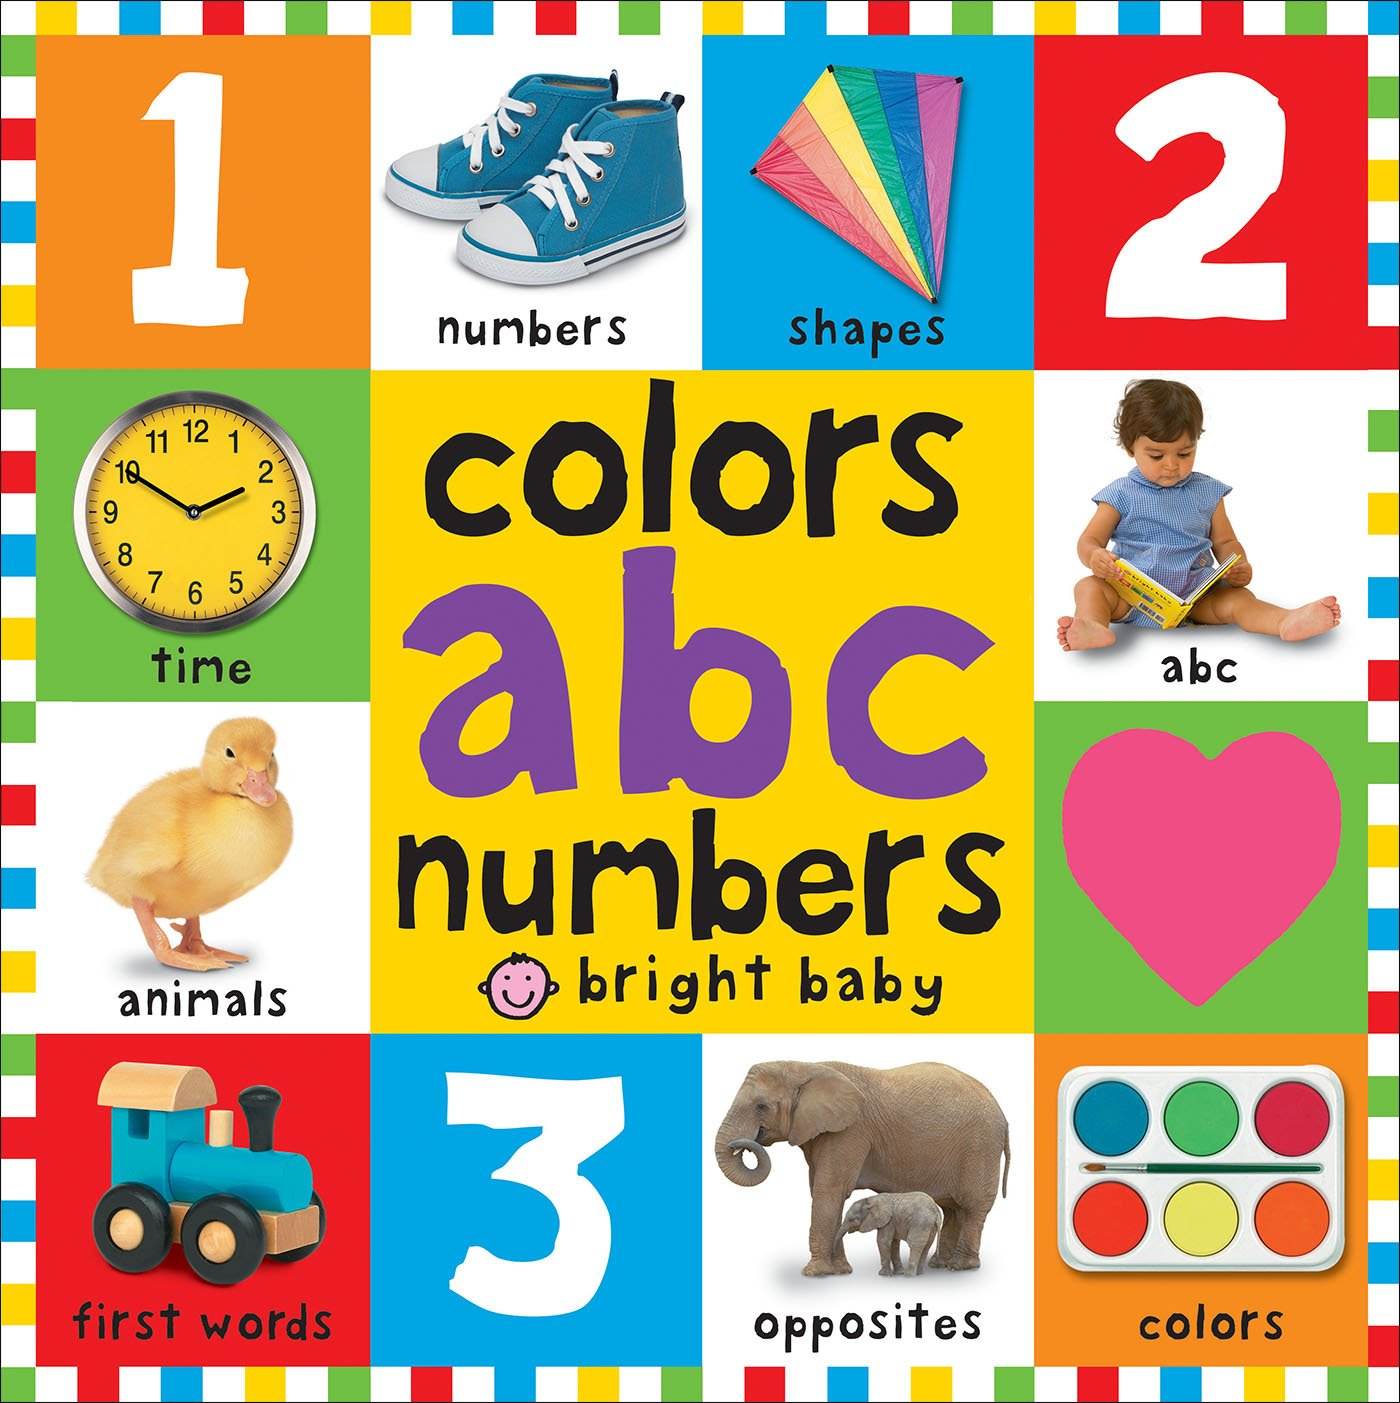 Amazon Bright Bbaby colors abc & numbers first words First